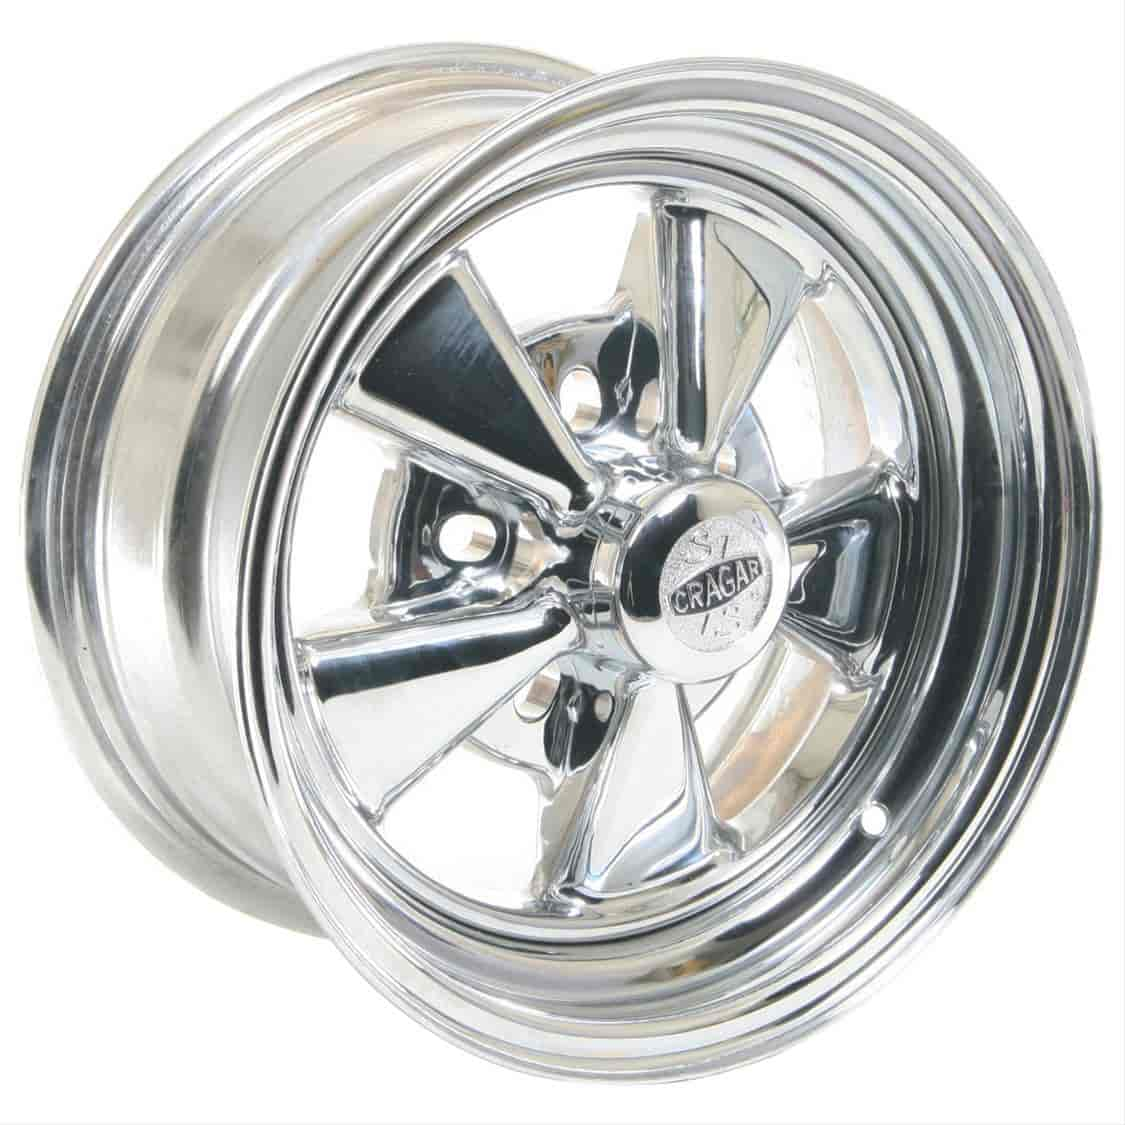 Cragar 08865 - Cragar 08/61 Series S/S Super Sport Wheels